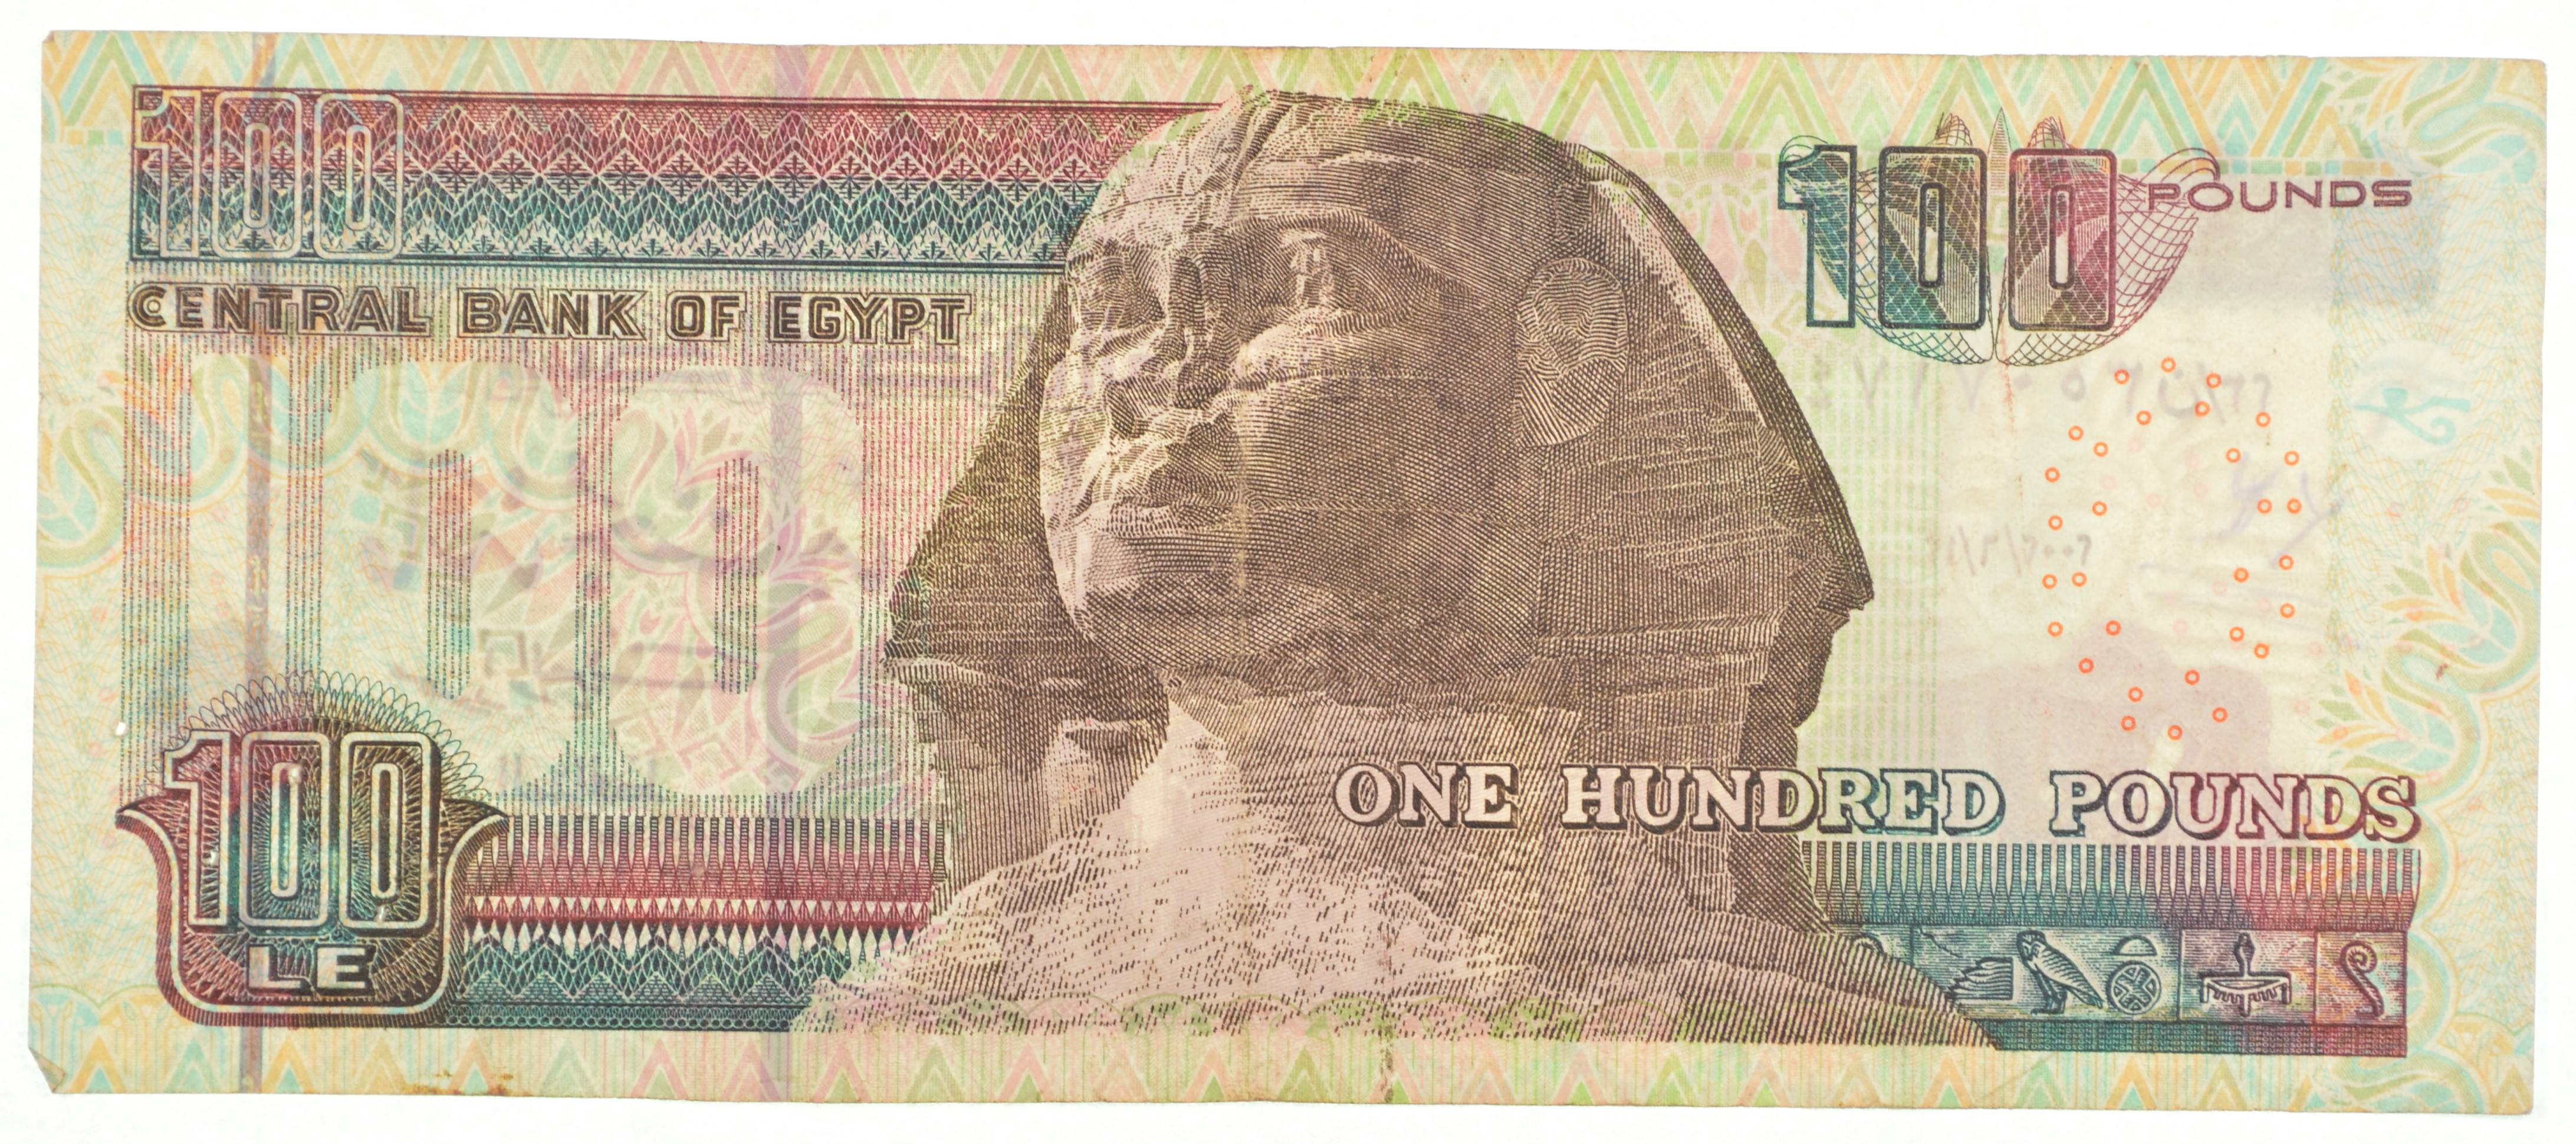 Image 1 Of 2 Historic Egyptian Paper Money Currency